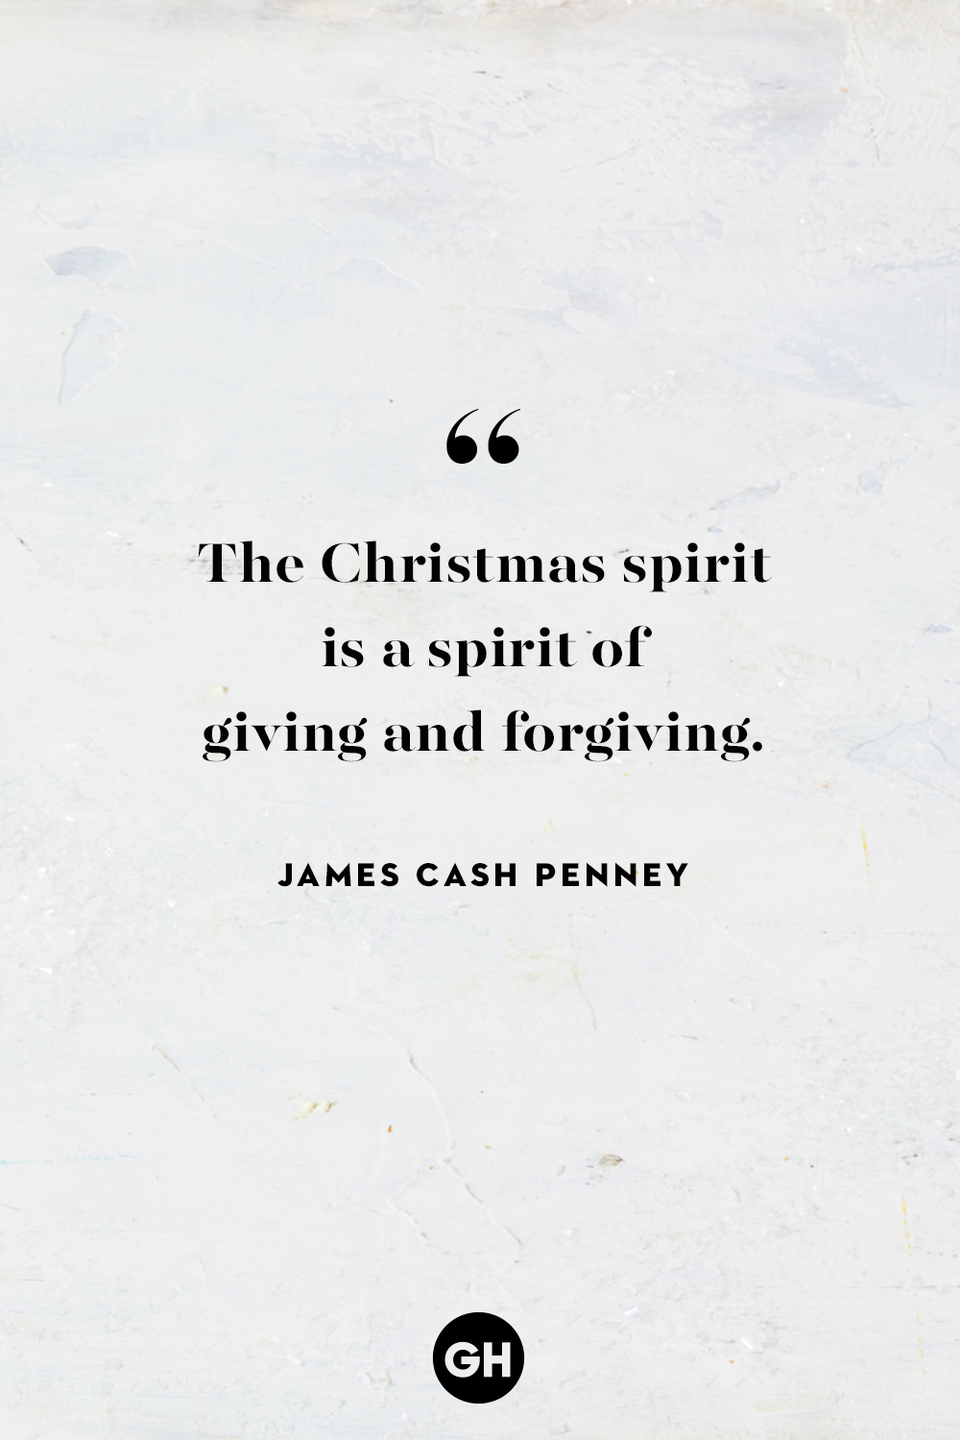 <p>The Christmas spirit is a spirit of giving and forgiving.</p>